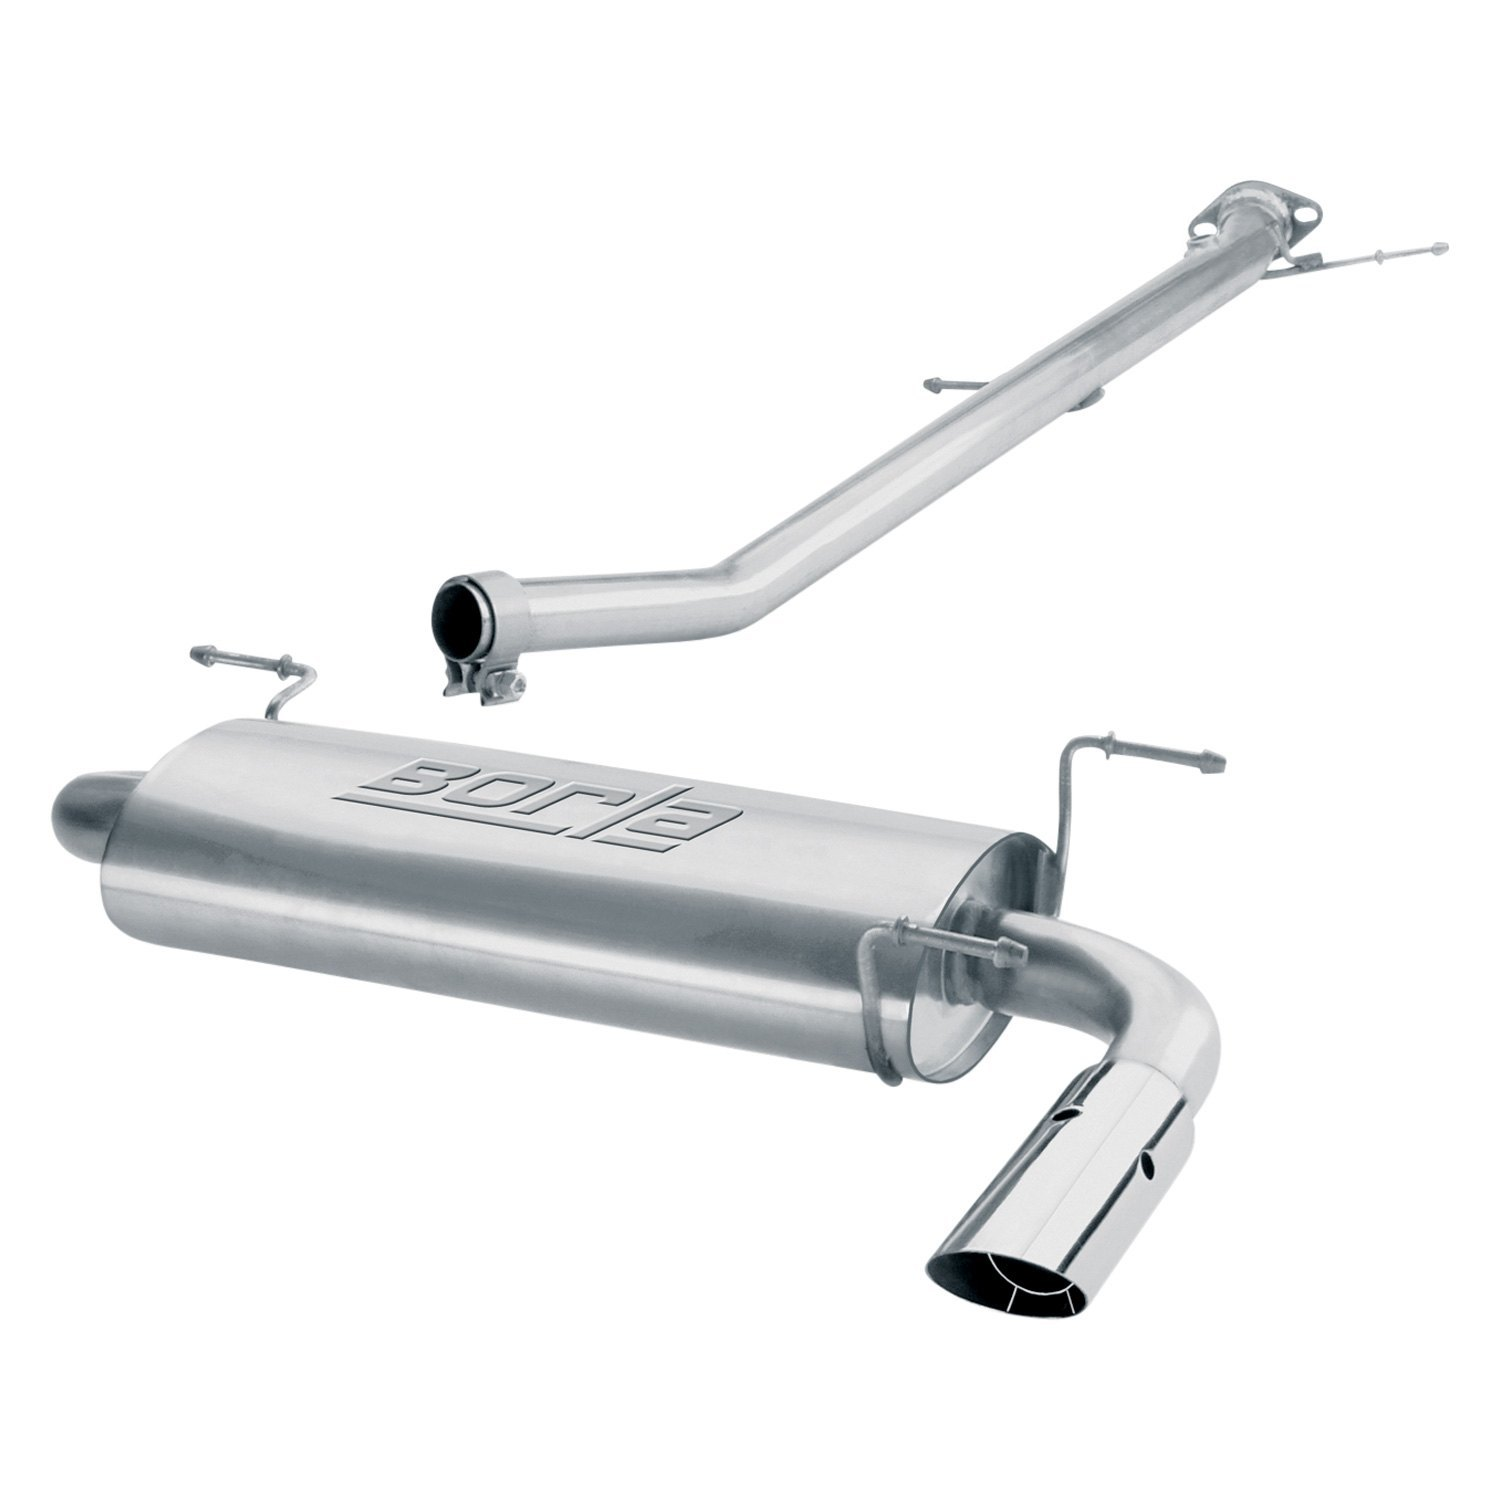 borla s type stainless steel cat back exhaust system with single rear exit